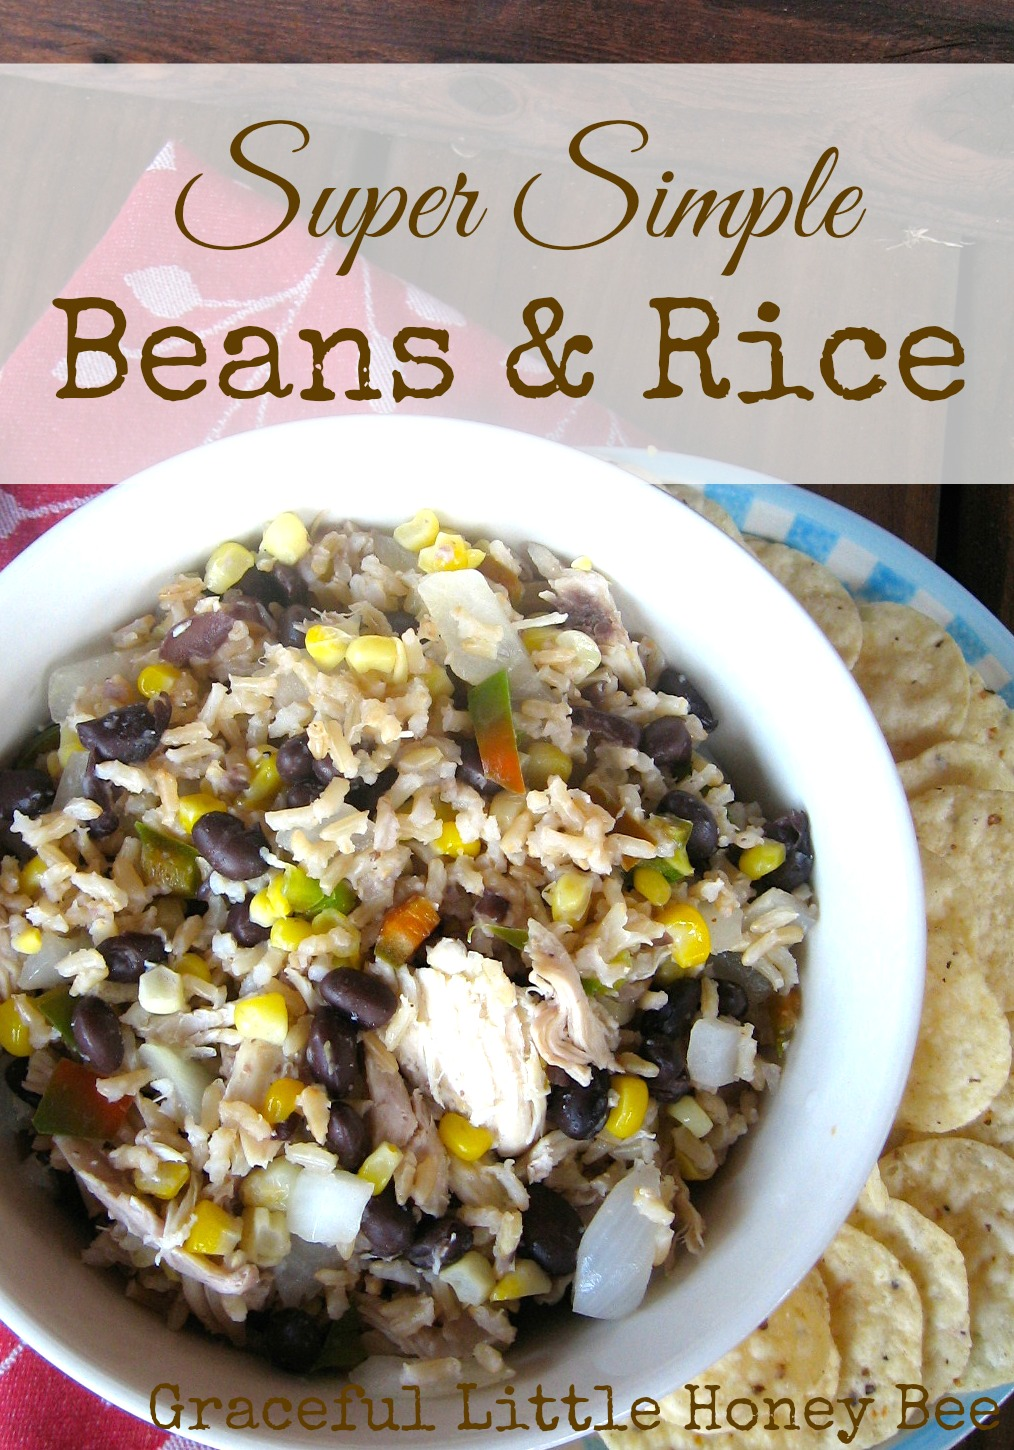 Super Simple Beans And Rice Graceful Little Honey Bee